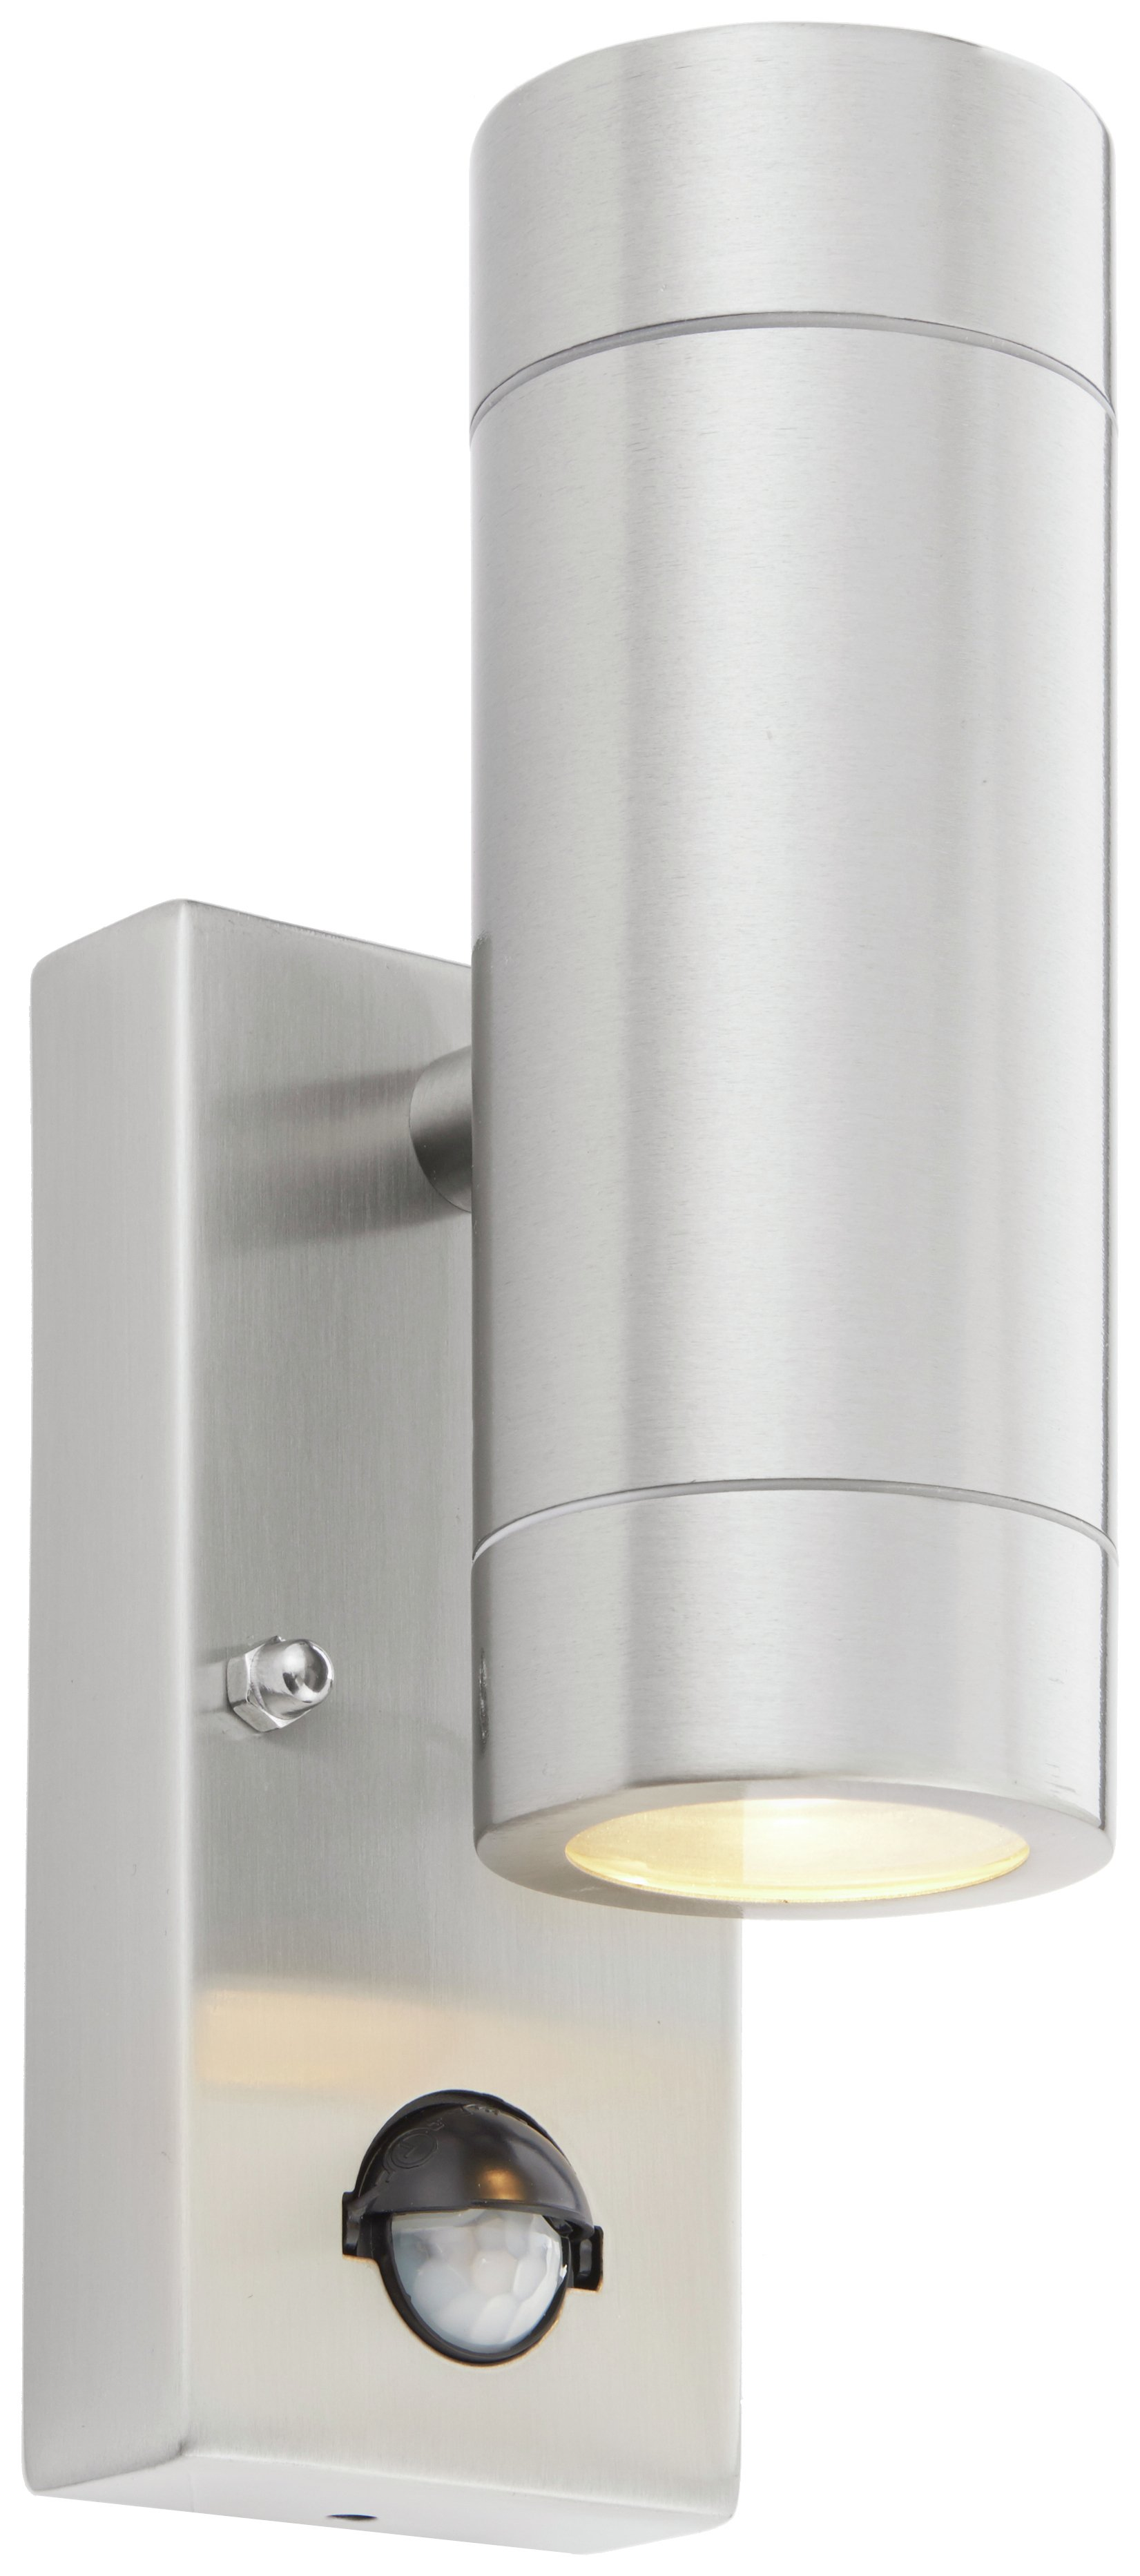 Image of Collection Cygni Stainless Steel Up & Down Security Light